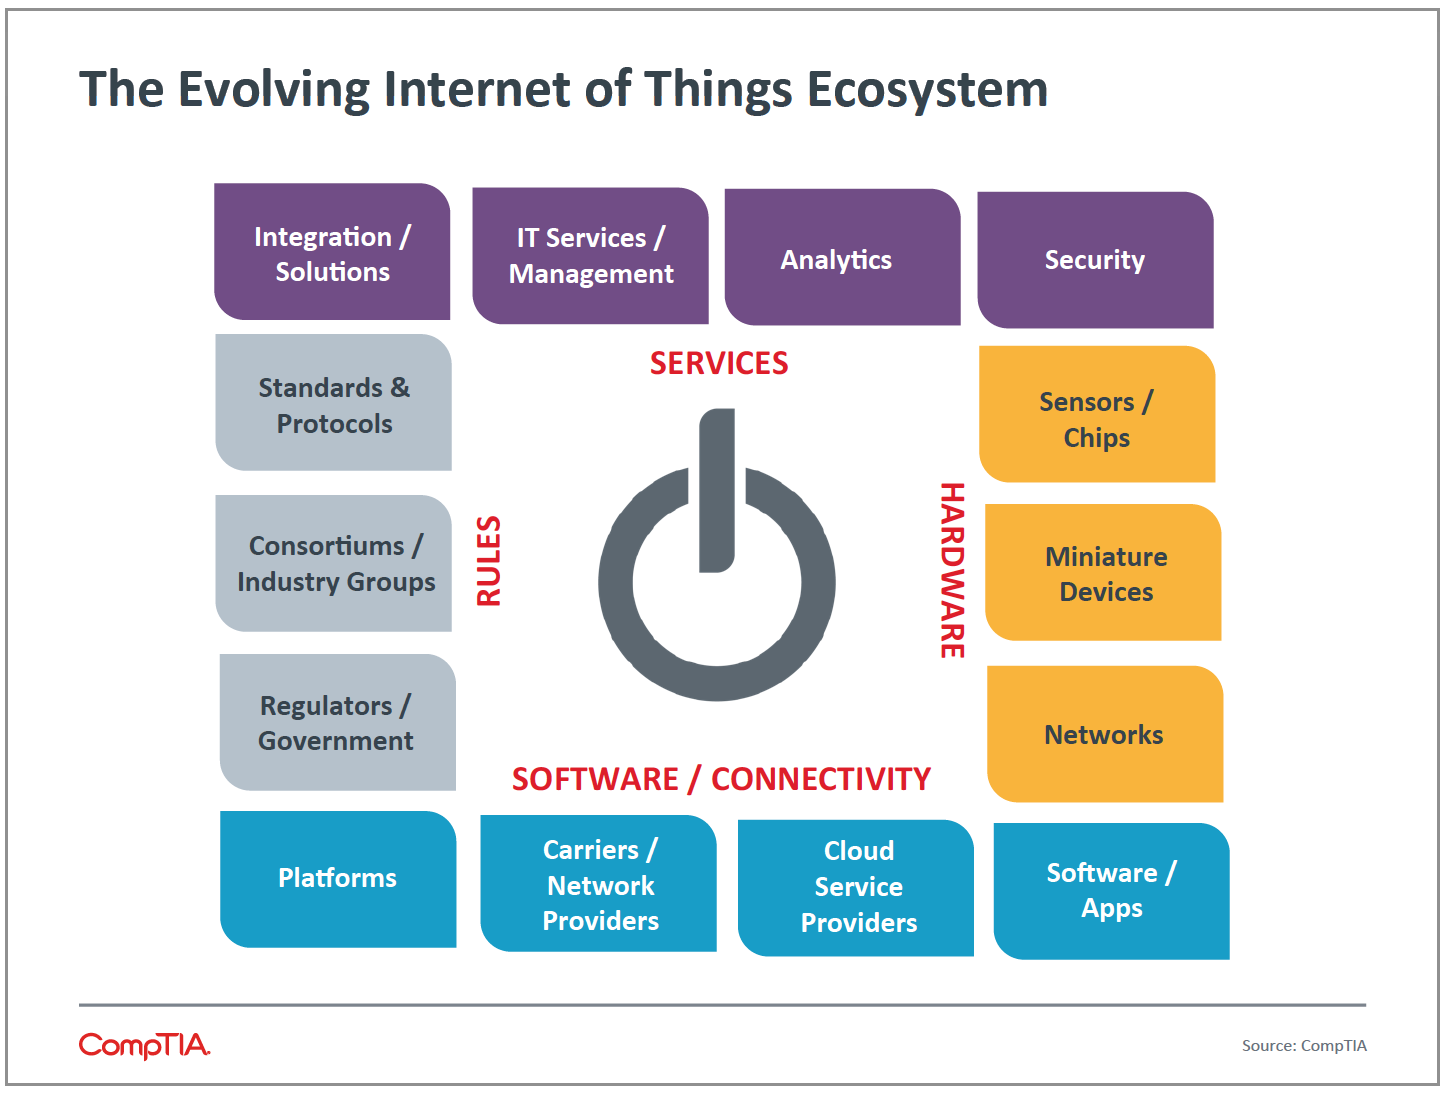 The Involving Internet of Things Ecosystem